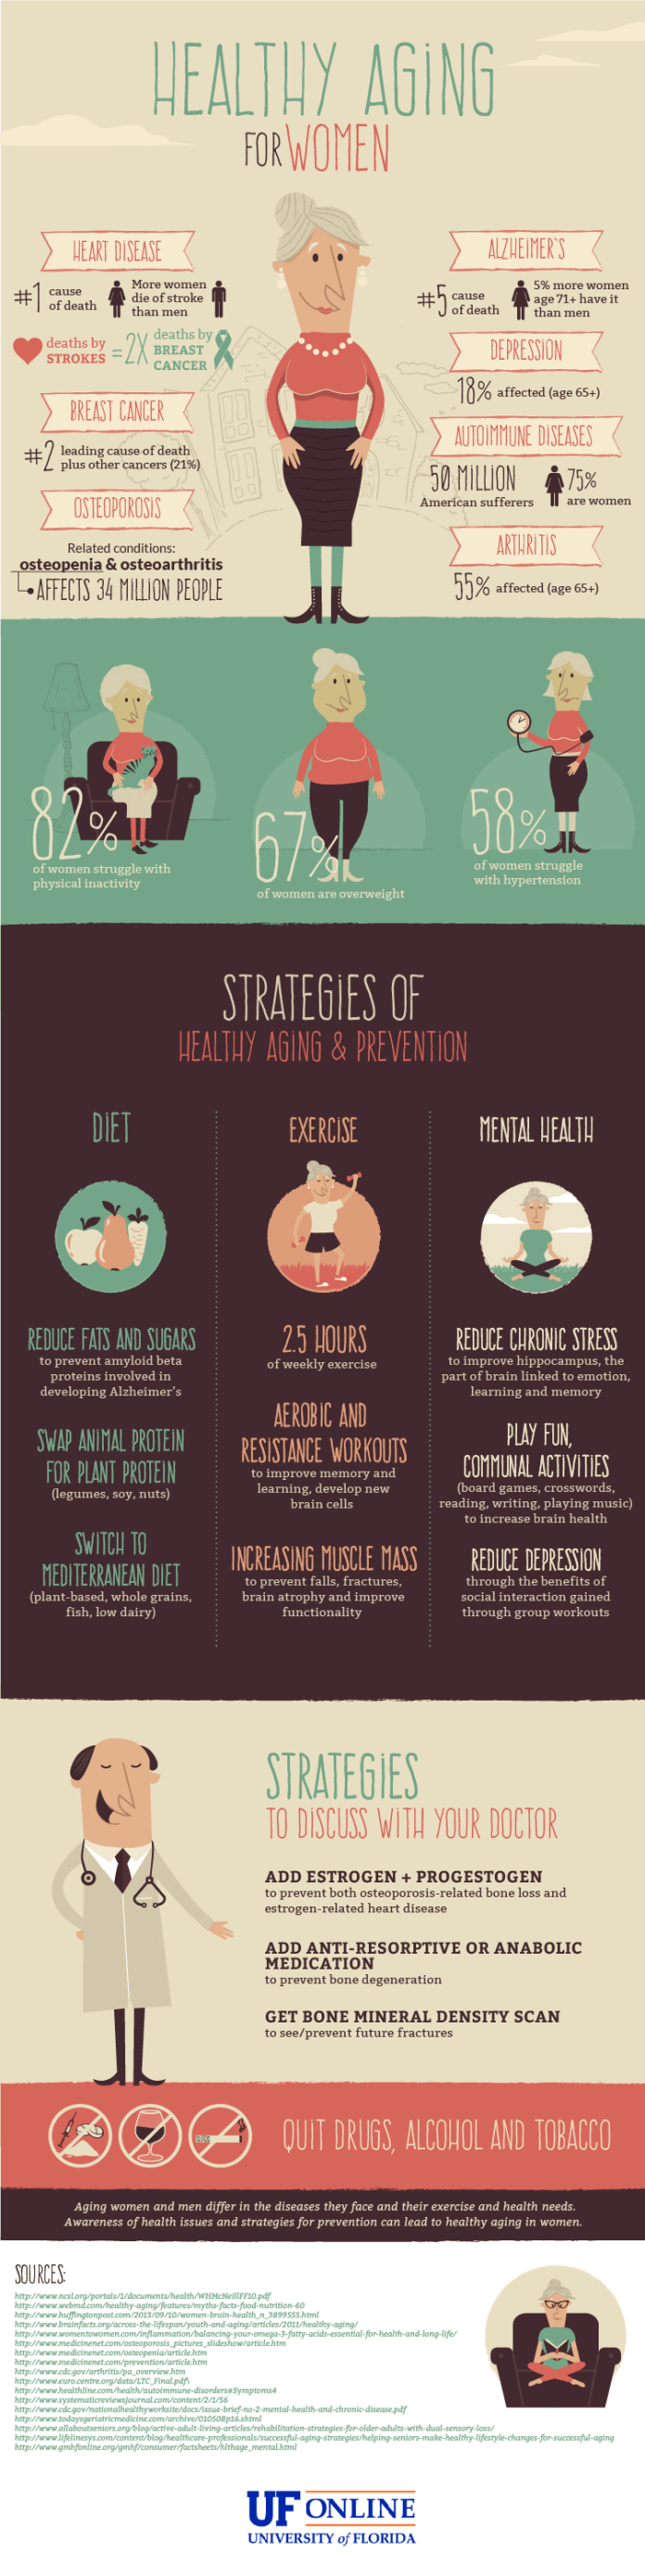 How to stop aging poster for women. infographic to help stop aging.